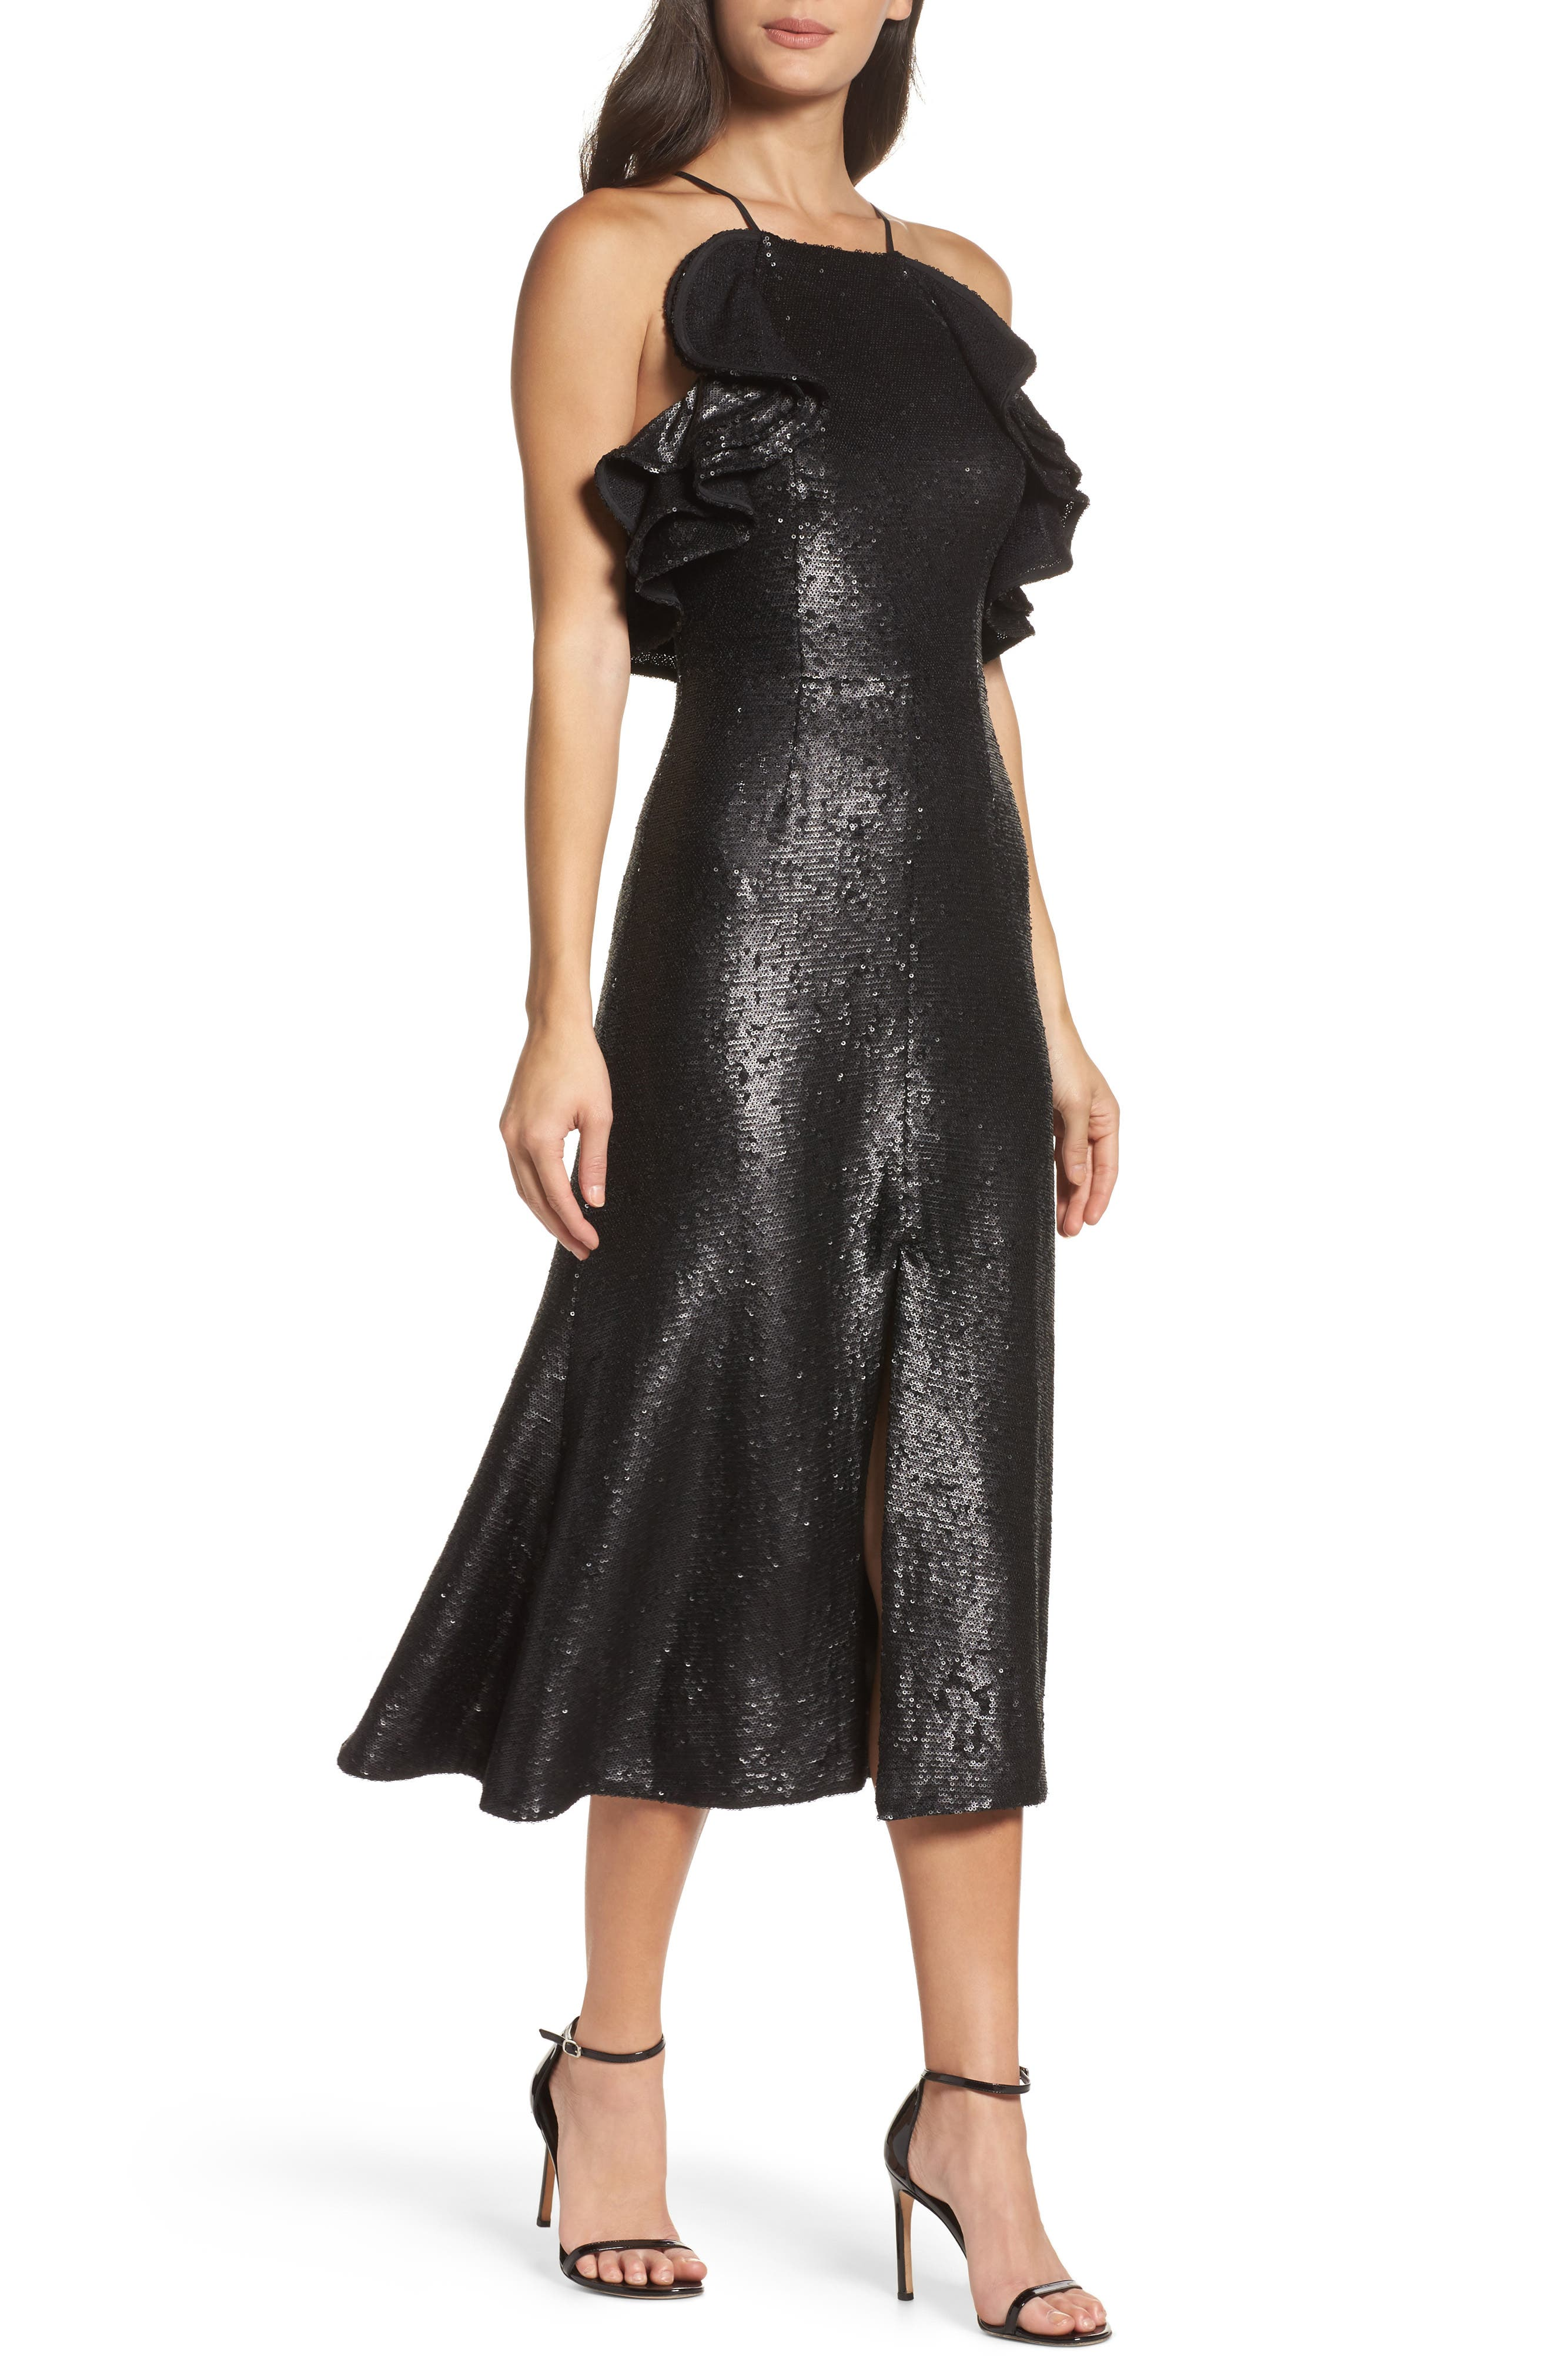 Alternate Image 1 Selected - C/MEO Collective Illuminated Sequin Ruffle Midi Dress (Nordstrom Exclusive)